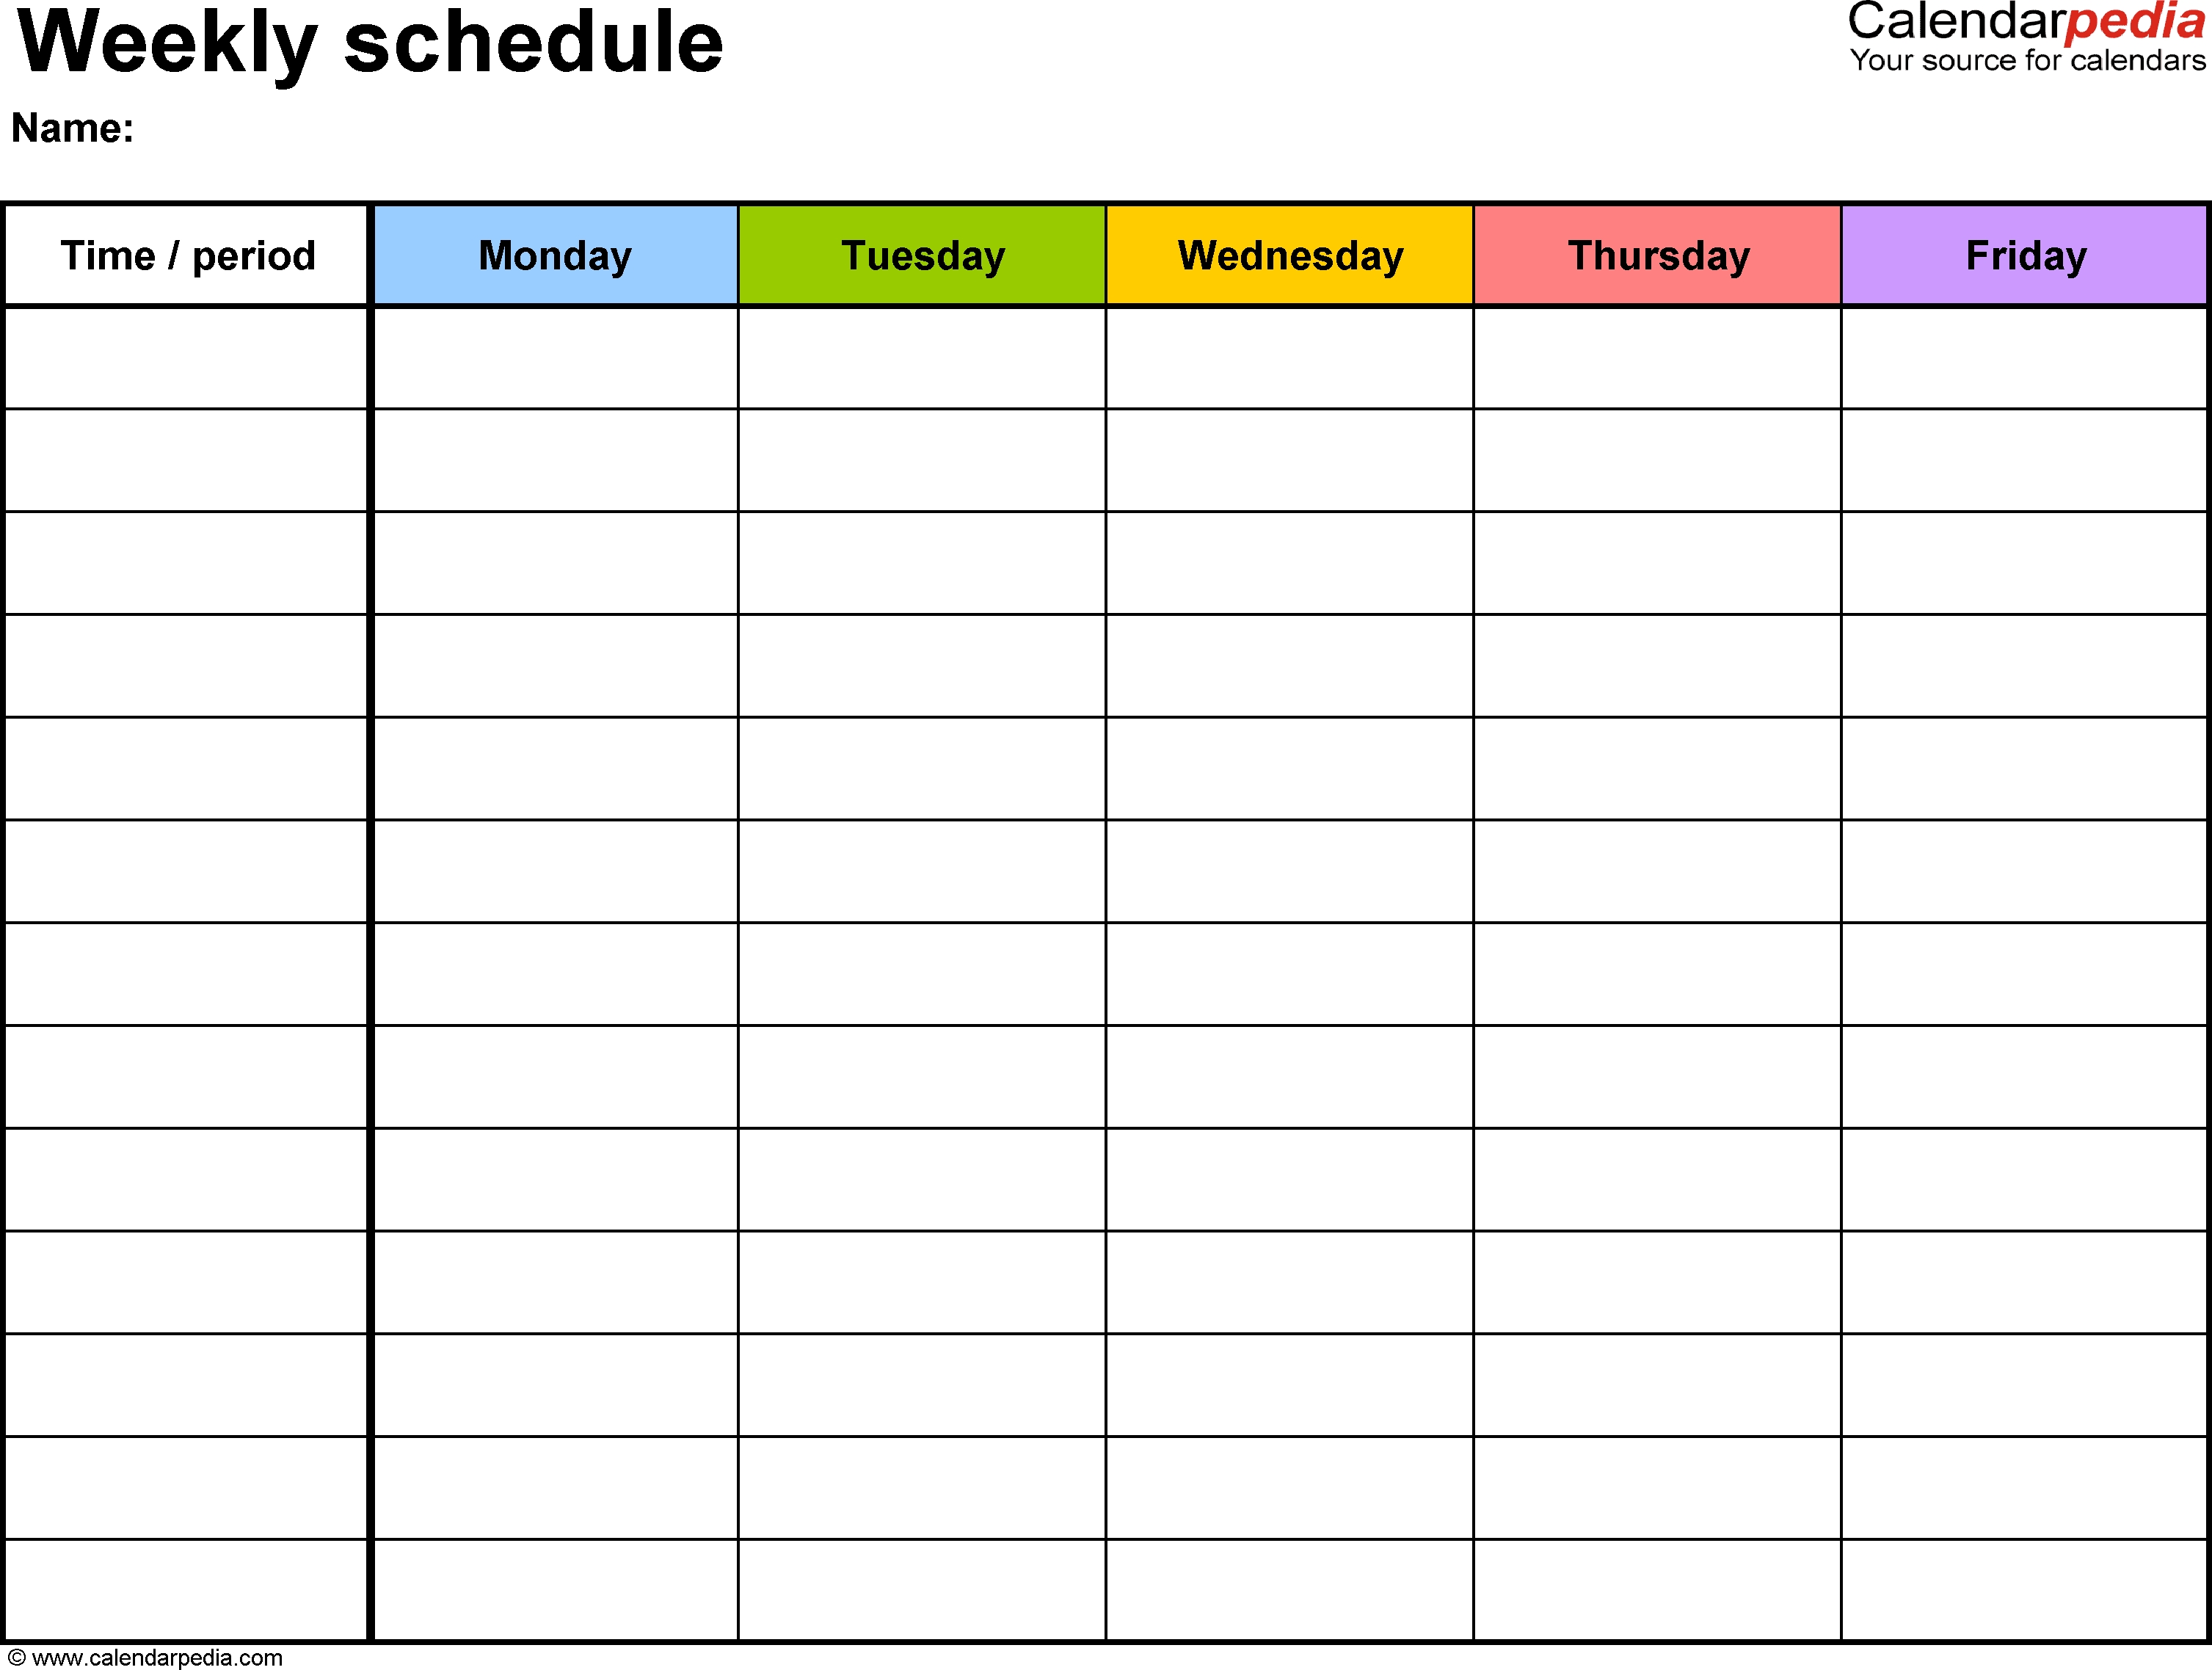 Free Weekly Schedule Templates For Word - 18 Templates for Free Printable Blank Weekly Calendar Templates